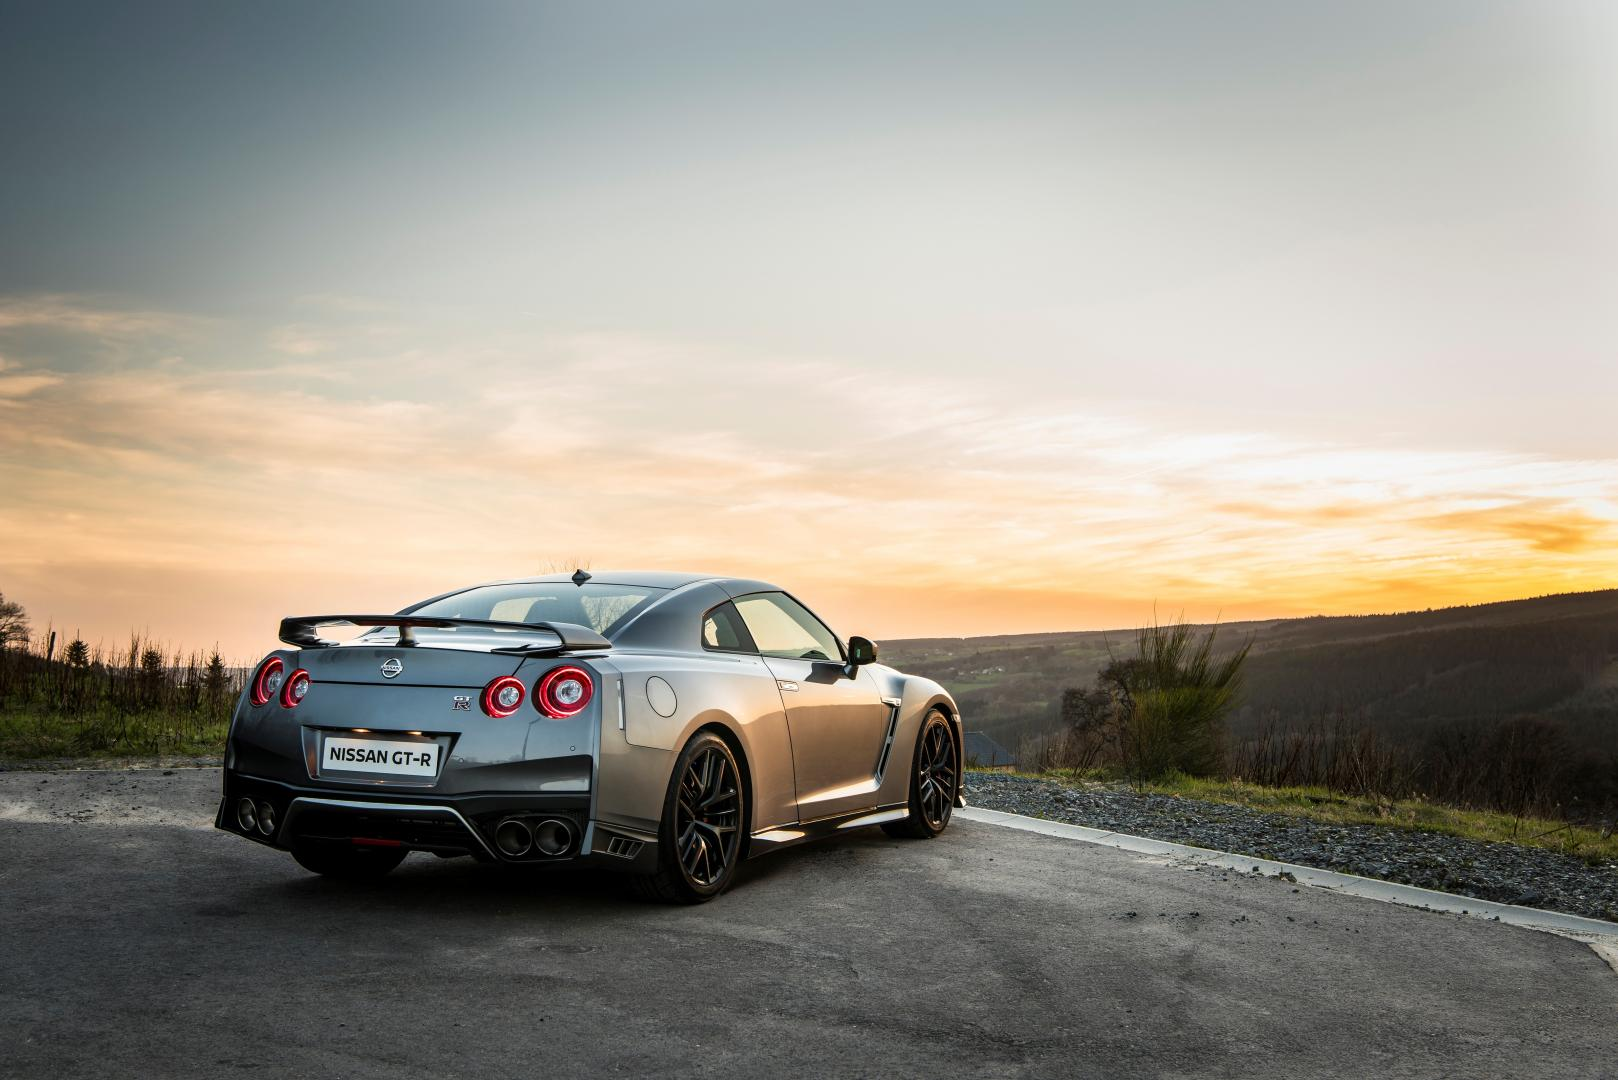 nissan gt r black edition autotest en specificaties banzai. Black Bedroom Furniture Sets. Home Design Ideas